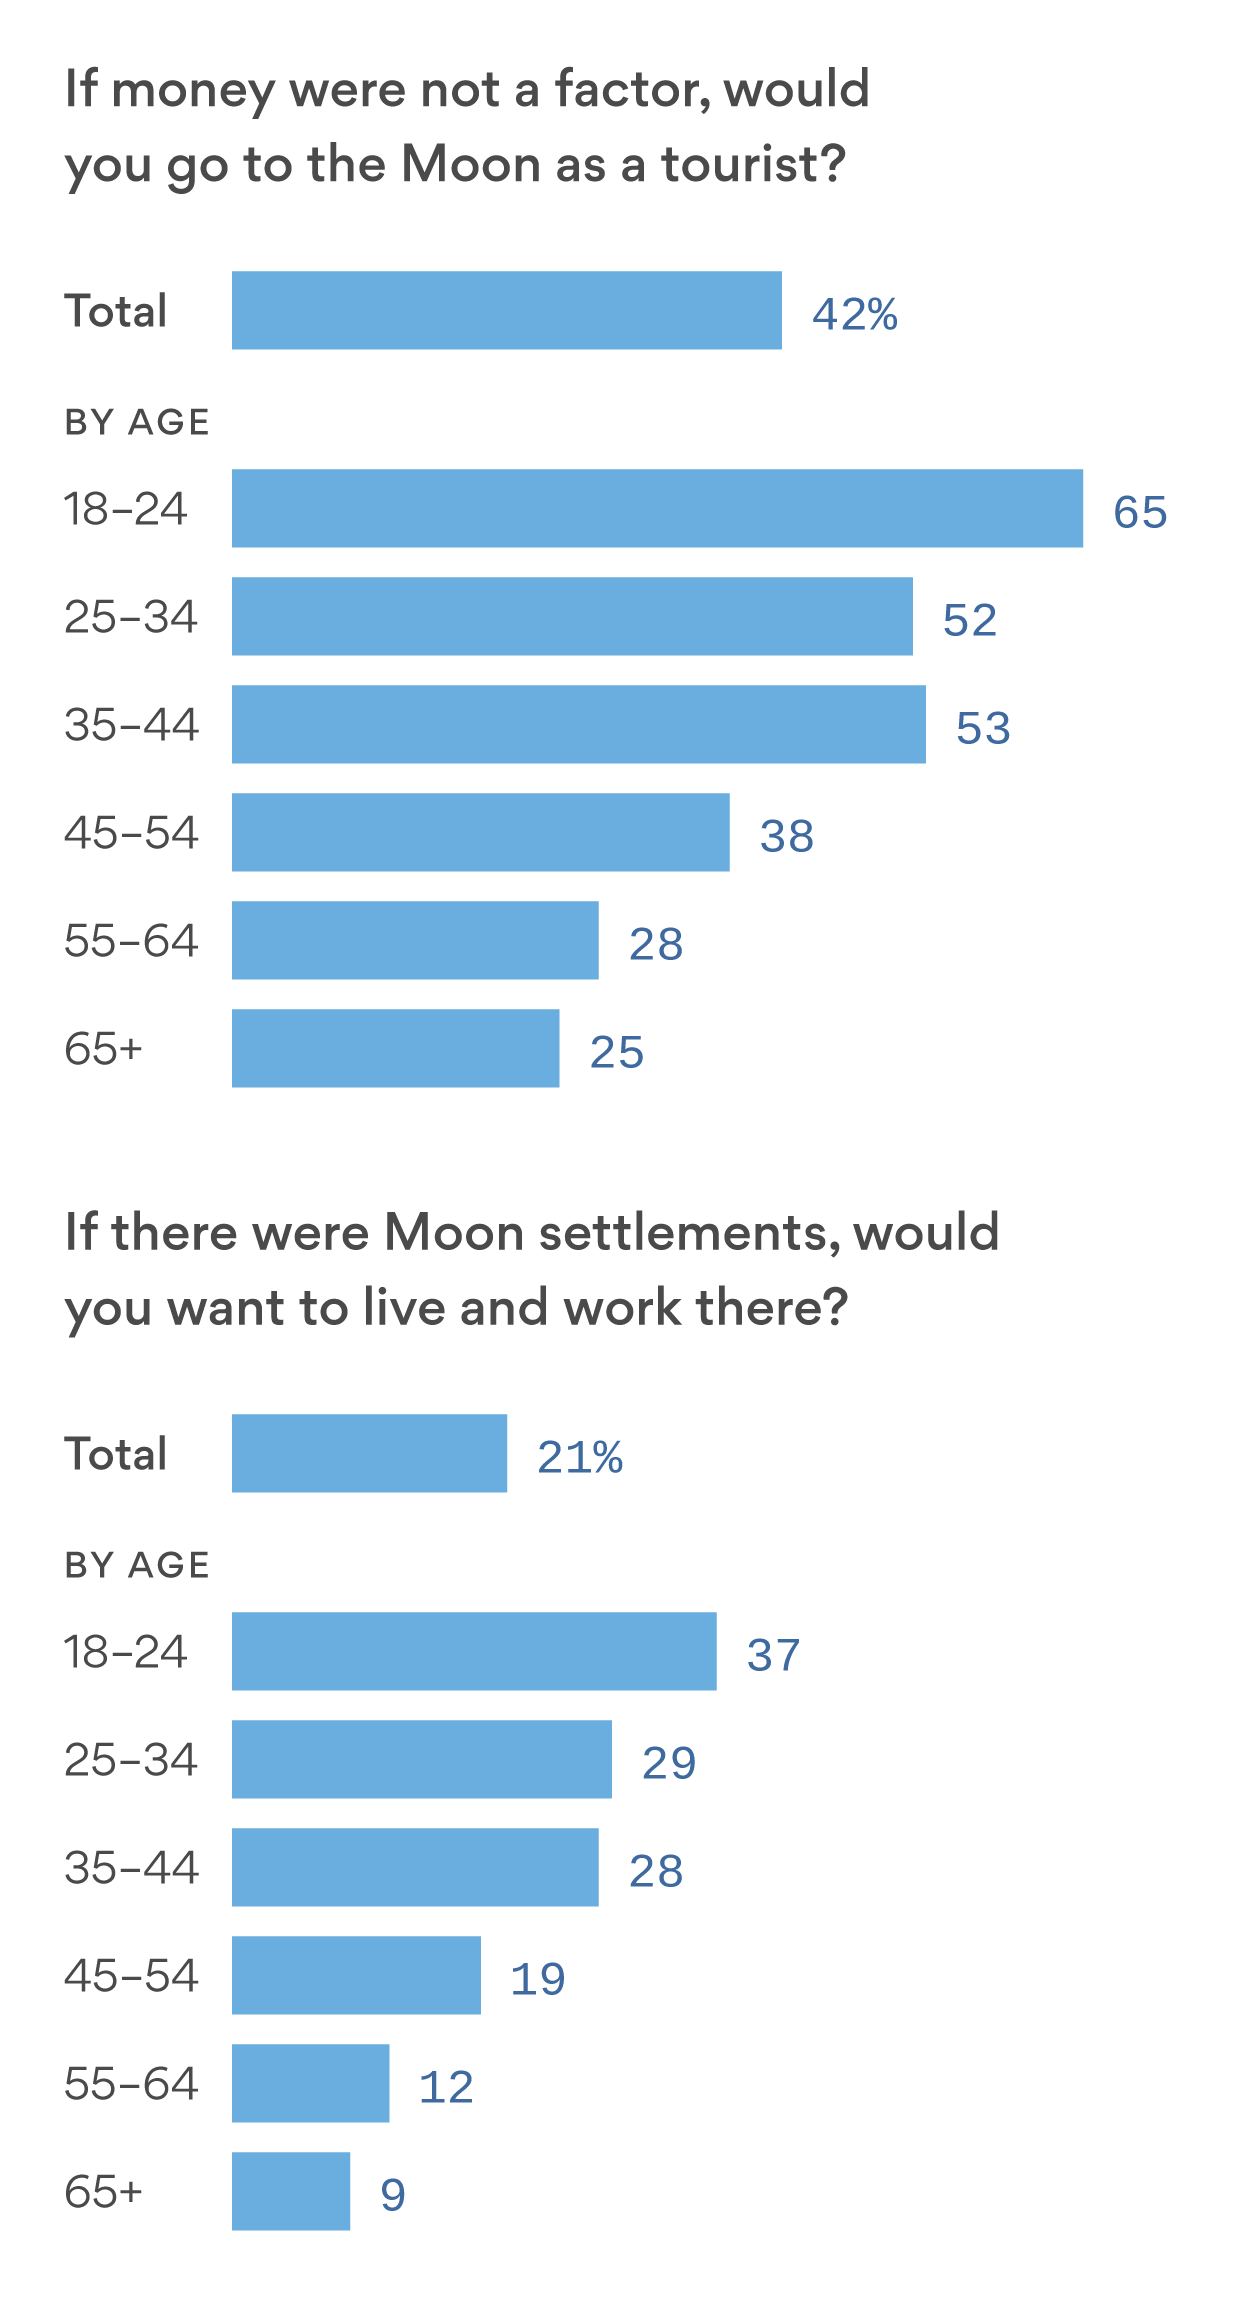 Poll: 21% would live and work on the Moon